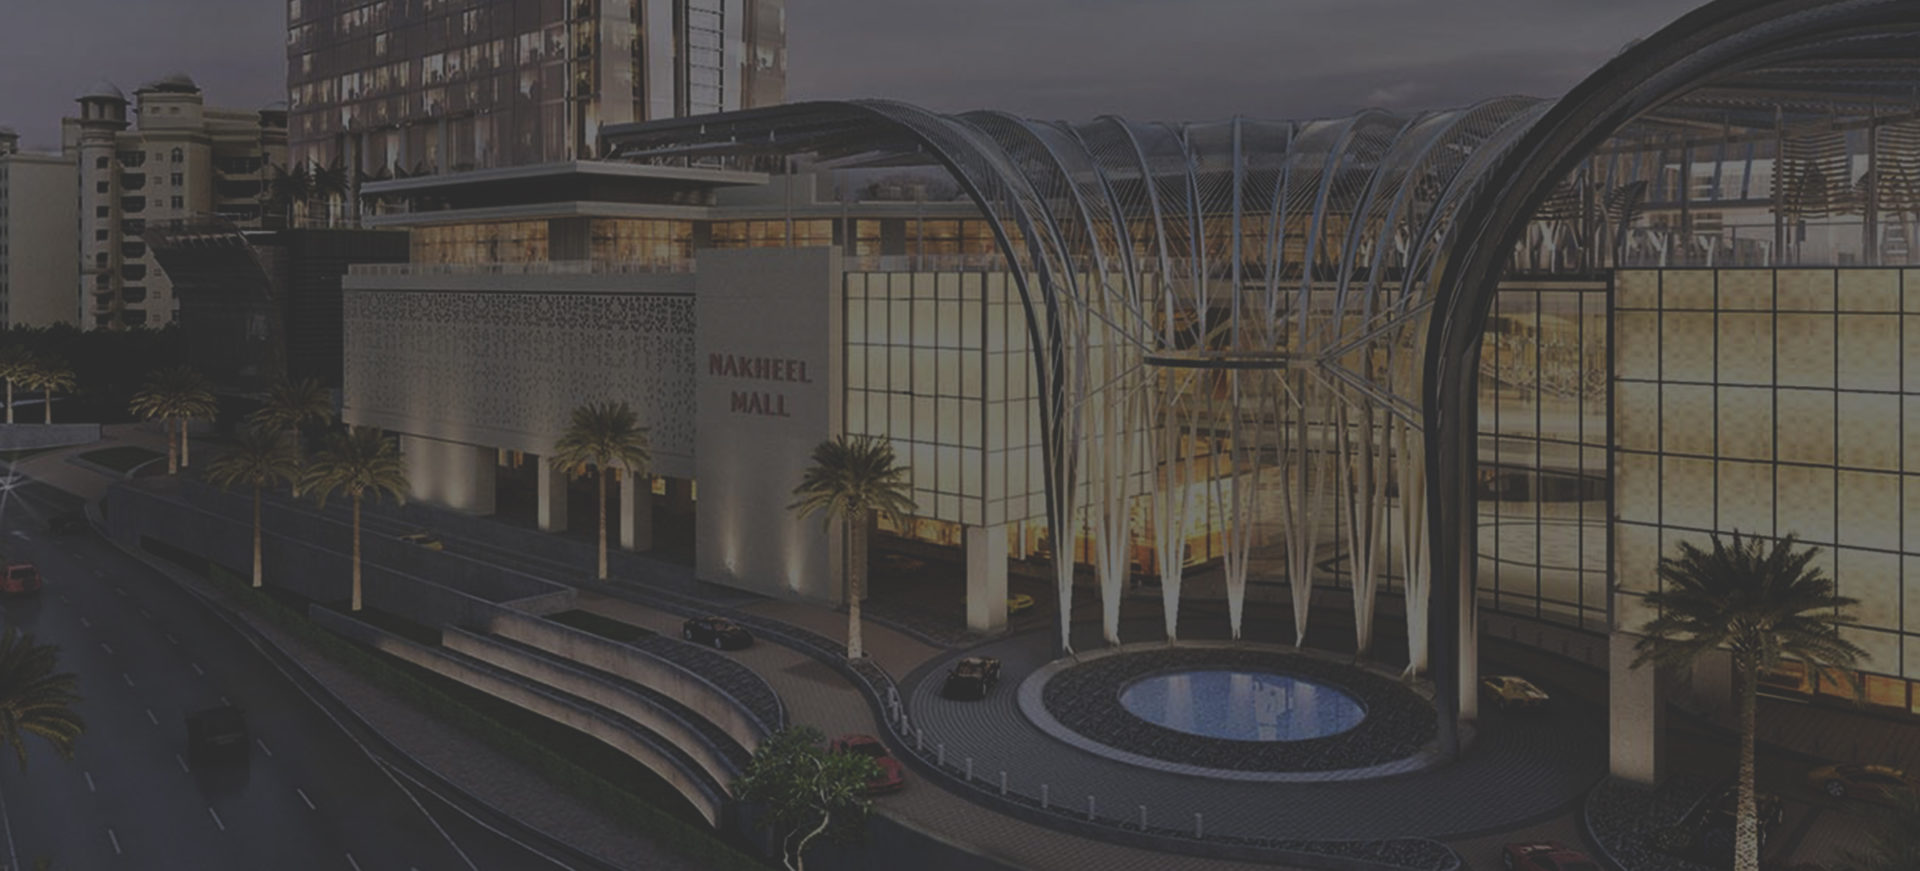 1847 Debuts a New Look at Nakheel Mall